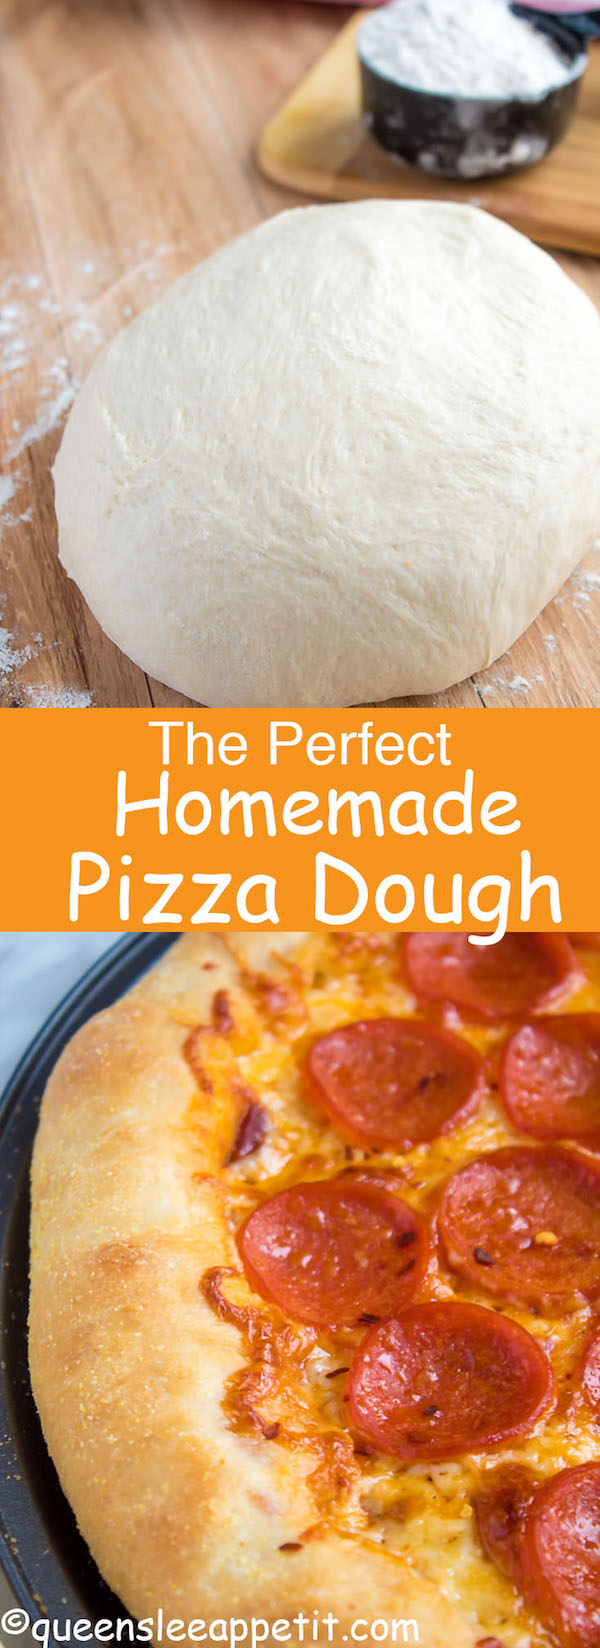 This Homemade Pizza Dough is super quick and easy to make. It's the perfect base for all your pizza creations!